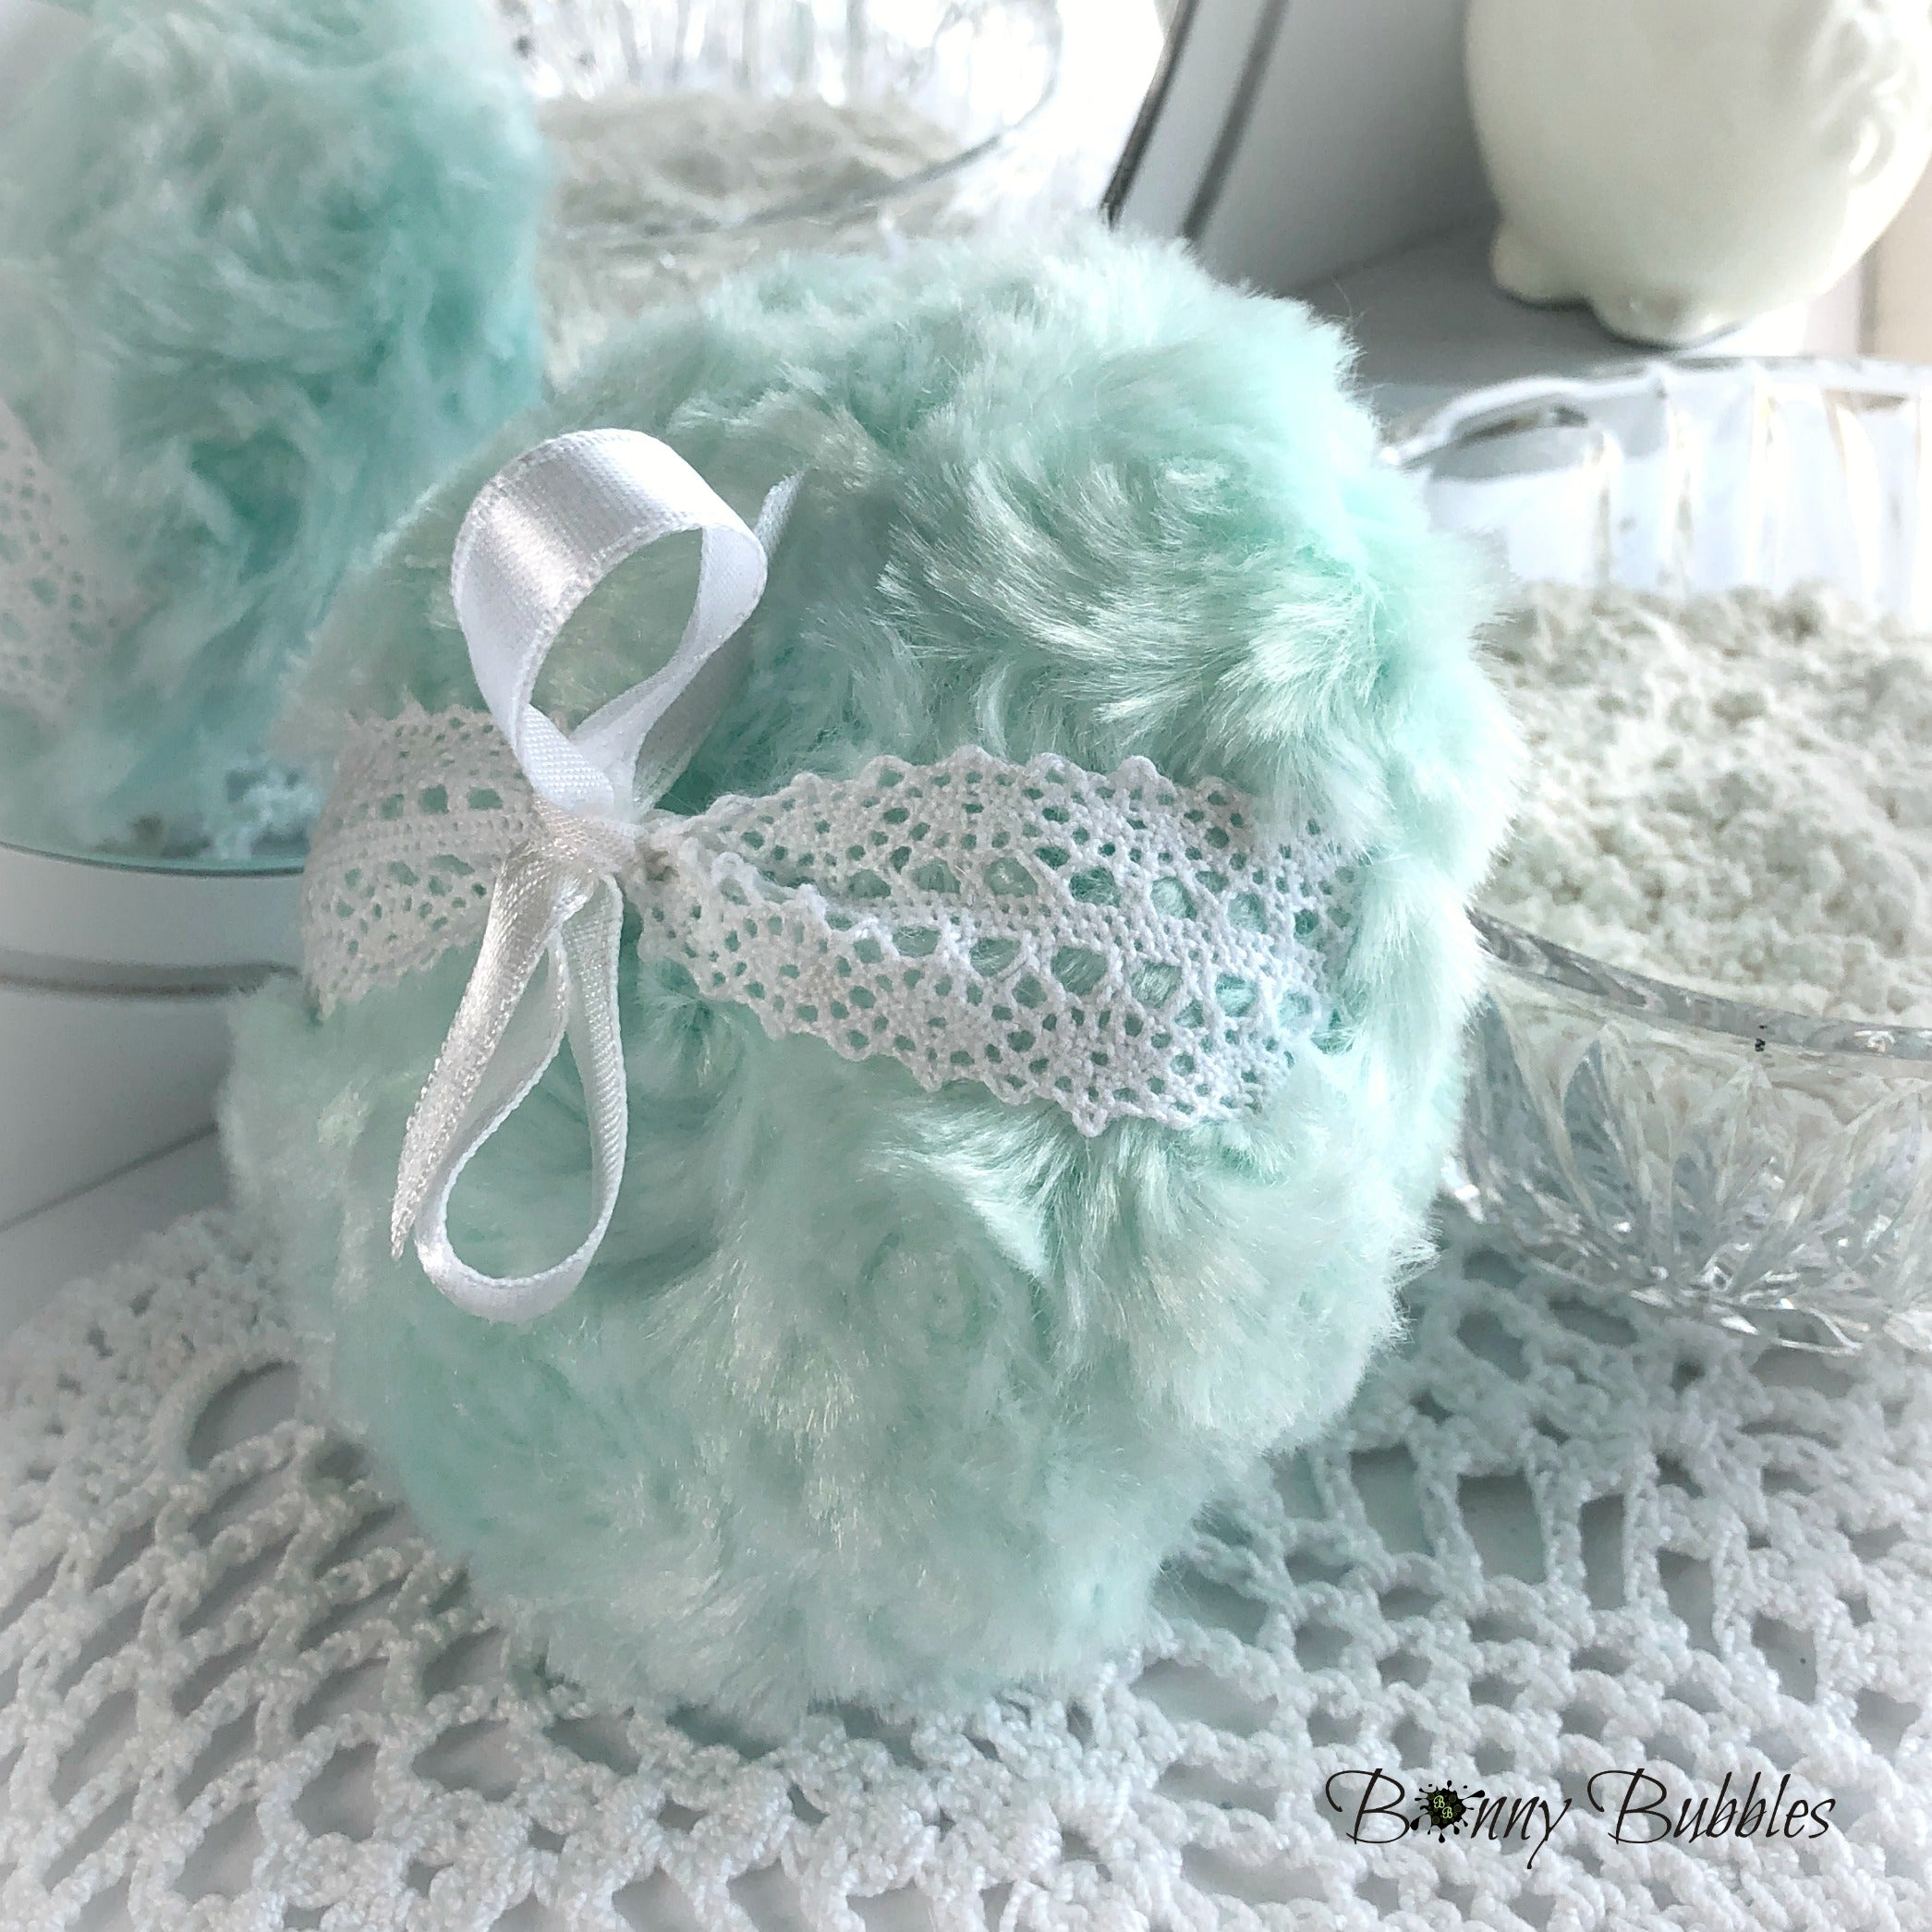 mint green body powder puff